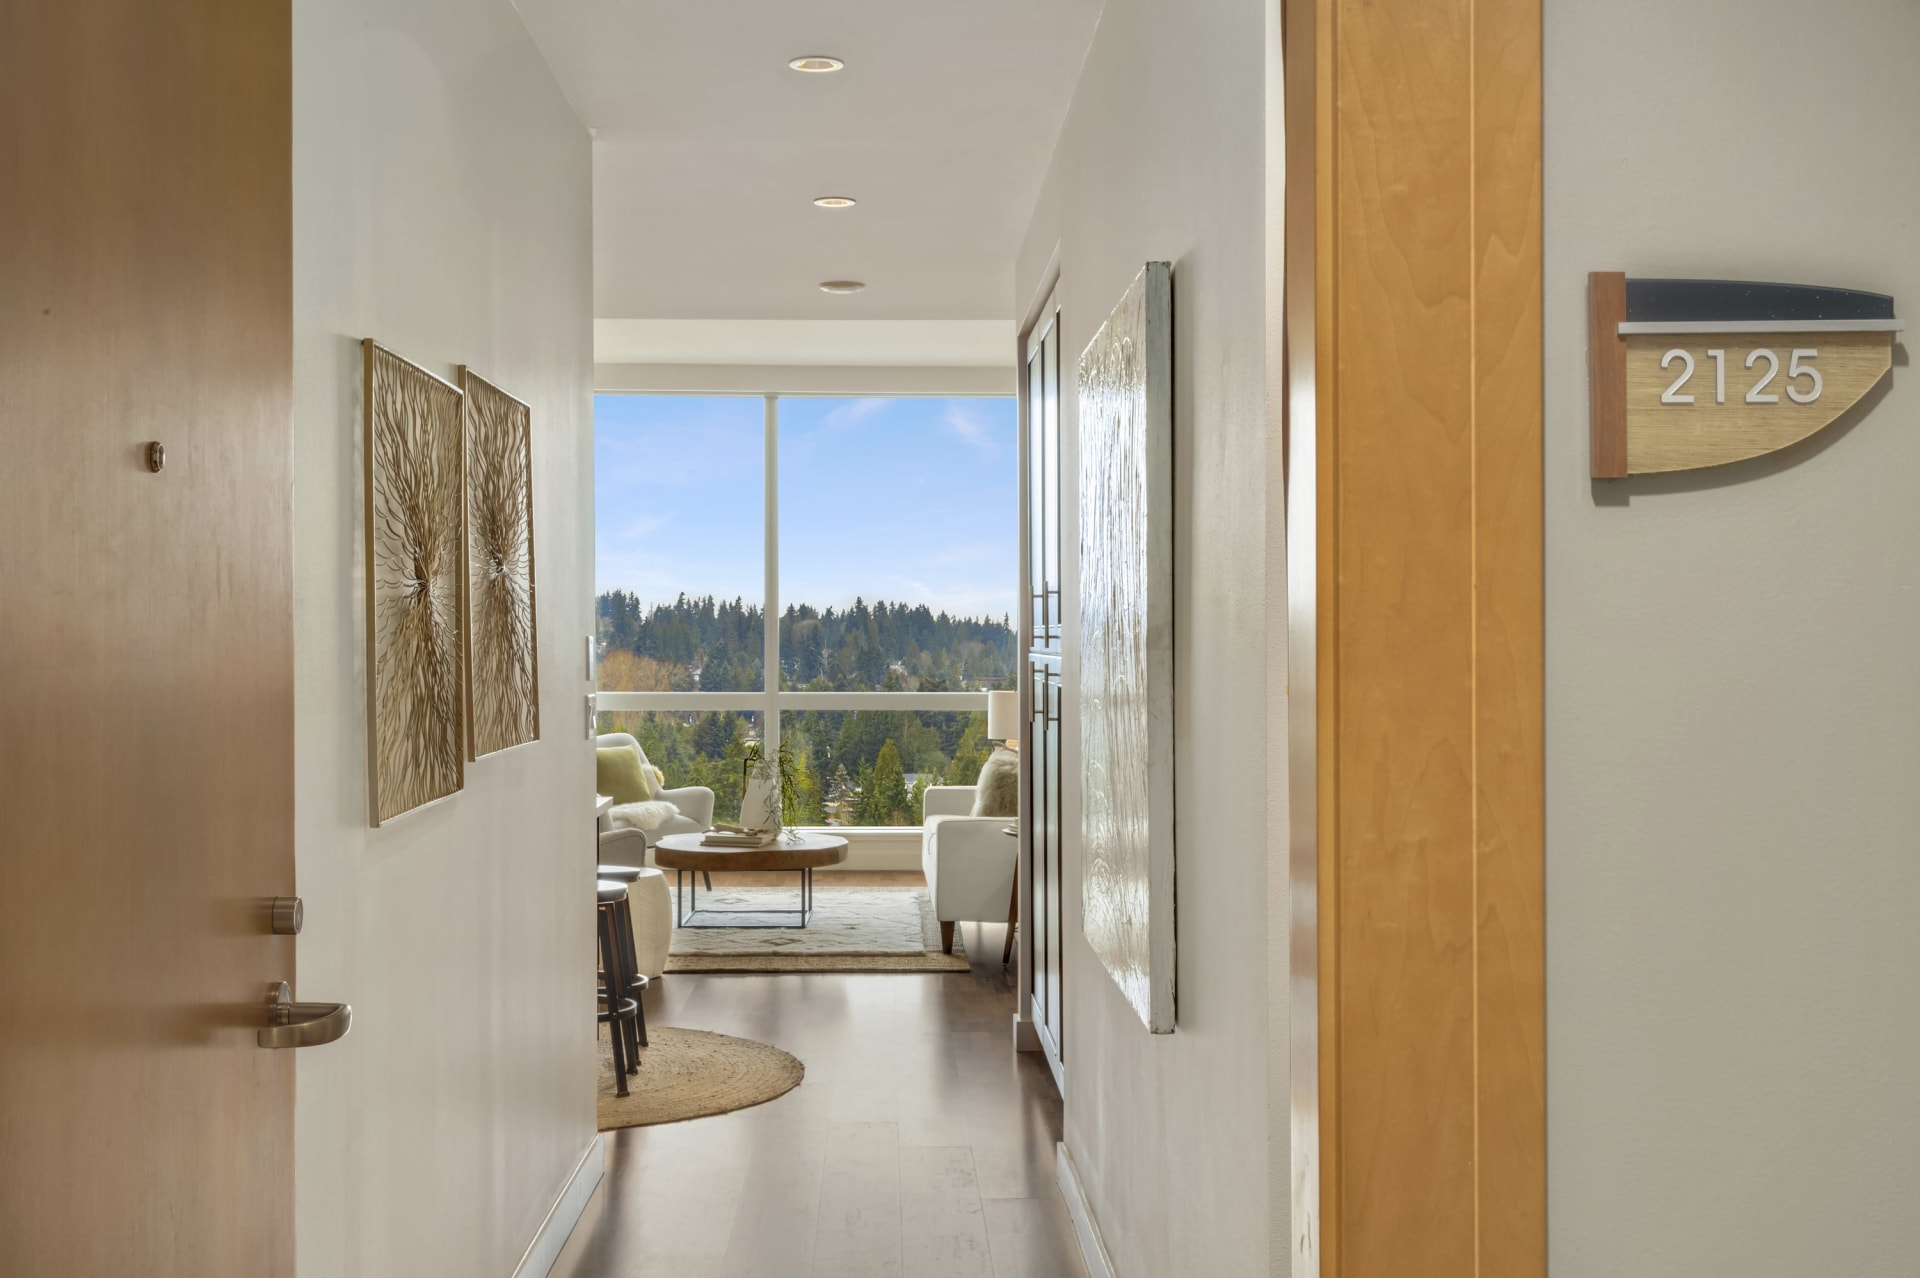 $875,000 / 10650 NE 9th Place #2125 Bellevue, 98004  image